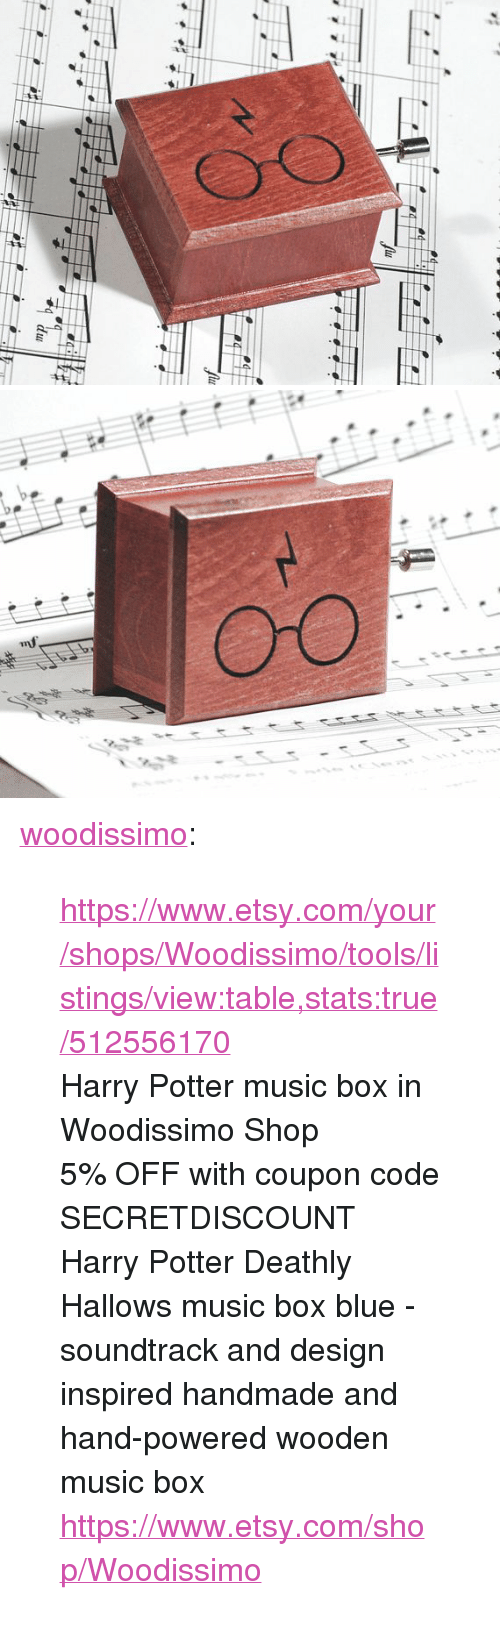 """listings: <p><a href=""""https://woodissimo.tumblr.com/post/159857412555/httpswwwetsycomyourshopswoodissimotoolsli"""" class=""""tumblr_blog"""">woodissimo</a>:</p><blockquote> <p><a href=""""https://www.etsy.com/your/shops/Woodissimo/tools/listings/view:table,stats:true/512556170"""">https://www.etsy.com/your/shops/Woodissimo/tools/listings/view:table,stats:true/512556170</a></p> <p>Harry Potter music box in Woodissimo Shop</p> <p>5% OFF with coupon code SECRETDISCOUNT<br/>Harry Potter Deathly Hallows music box blue - soundtrack and design inspired handmade and hand-powered wooden music box <a href=""""https://www.etsy.com/shop/Woodissimo"""">https://www.etsy.com/shop/Woodissimo</a><br/></p> </blockquote>"""